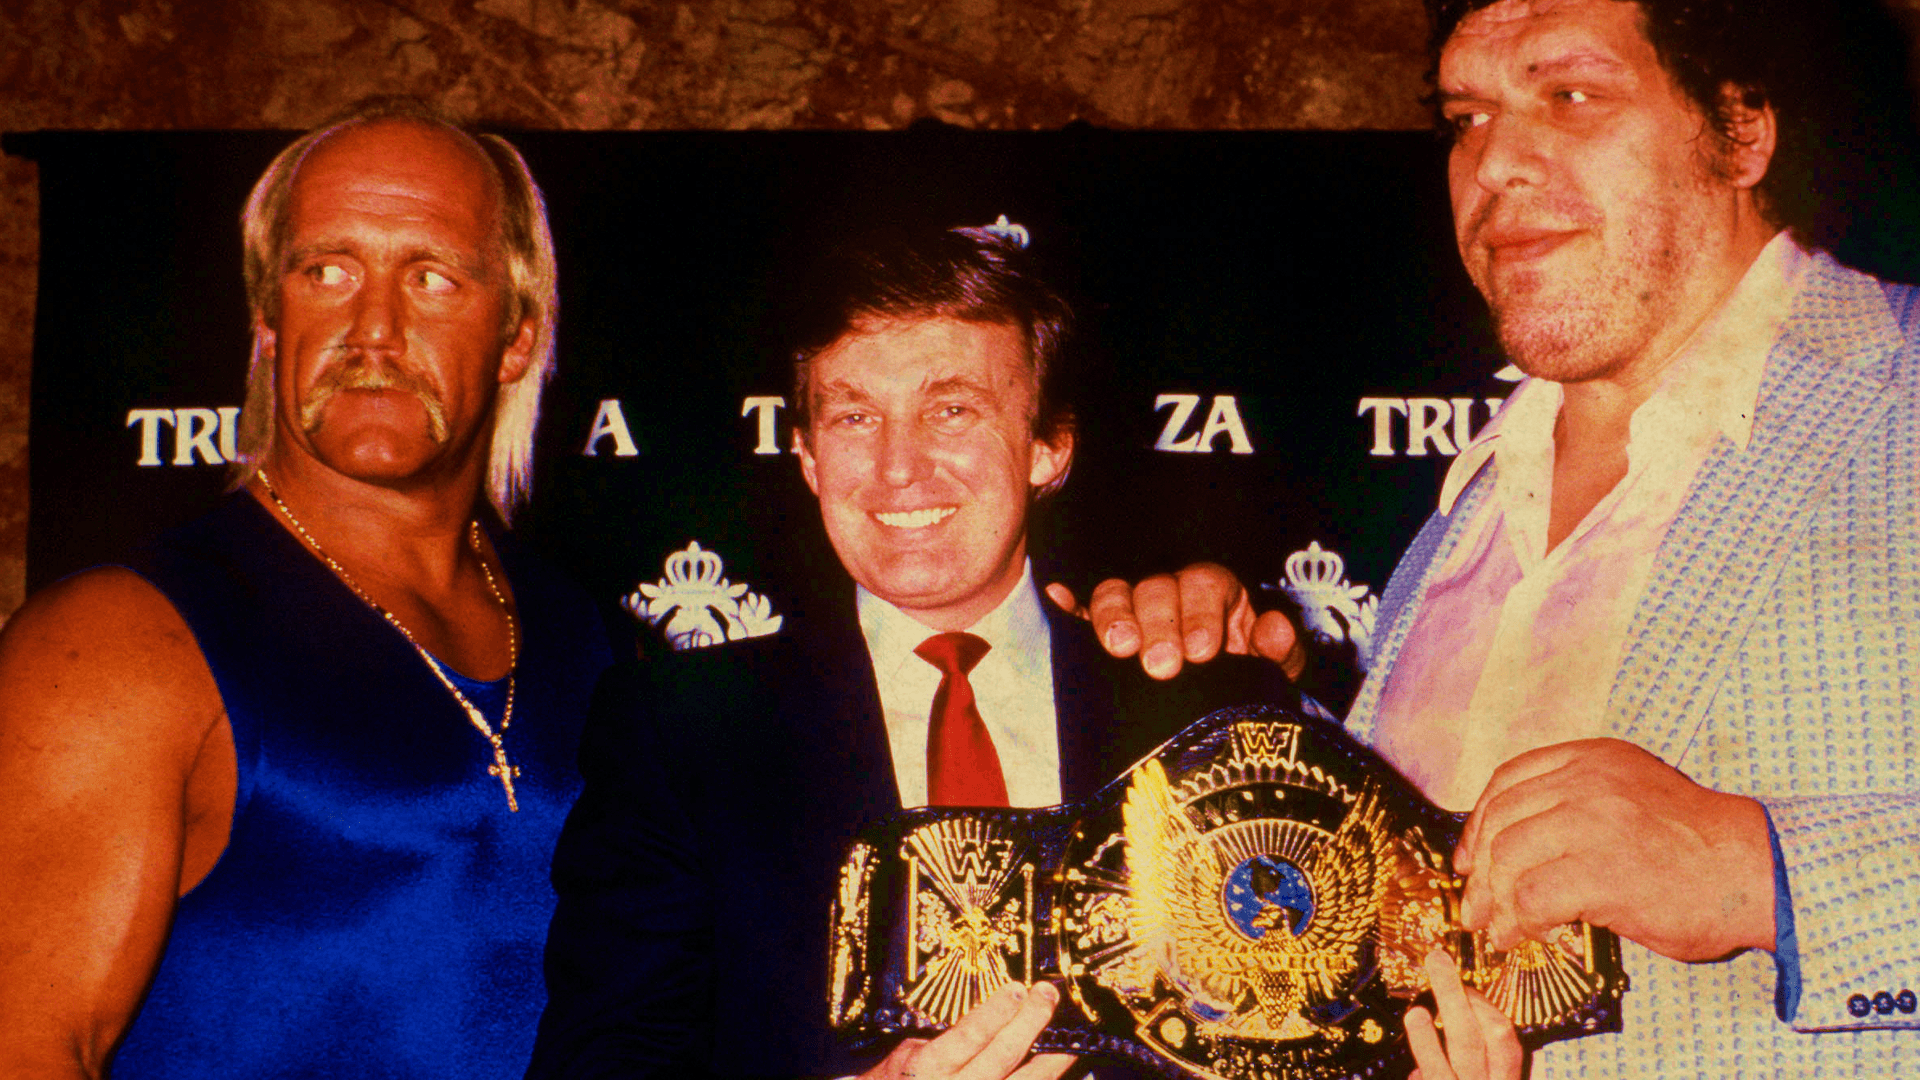 Donald Trump meets Hulk Hogan and Andre the Giant